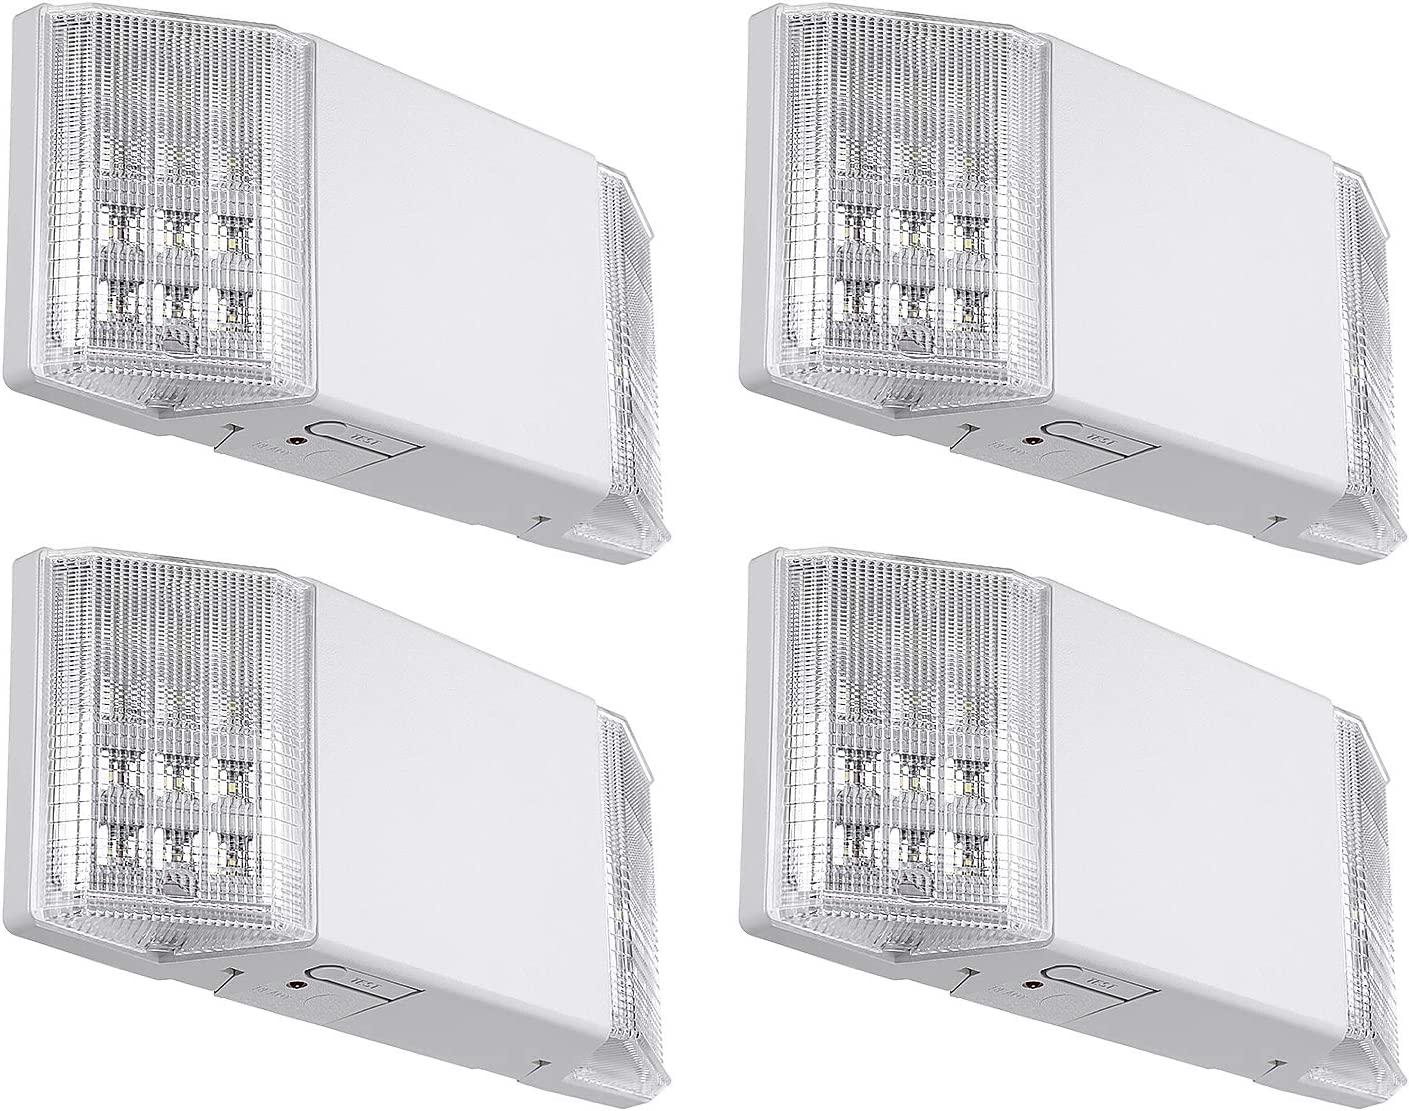 TORCHSTAR LED Emergency Exit Light Fixtures, Two LED Square Heads, with Battery Backup UL-Listed, 120V/277V Input, High Light Blackout Output for Home, Hallways, Corridors, Stairways, White, Pack of 4